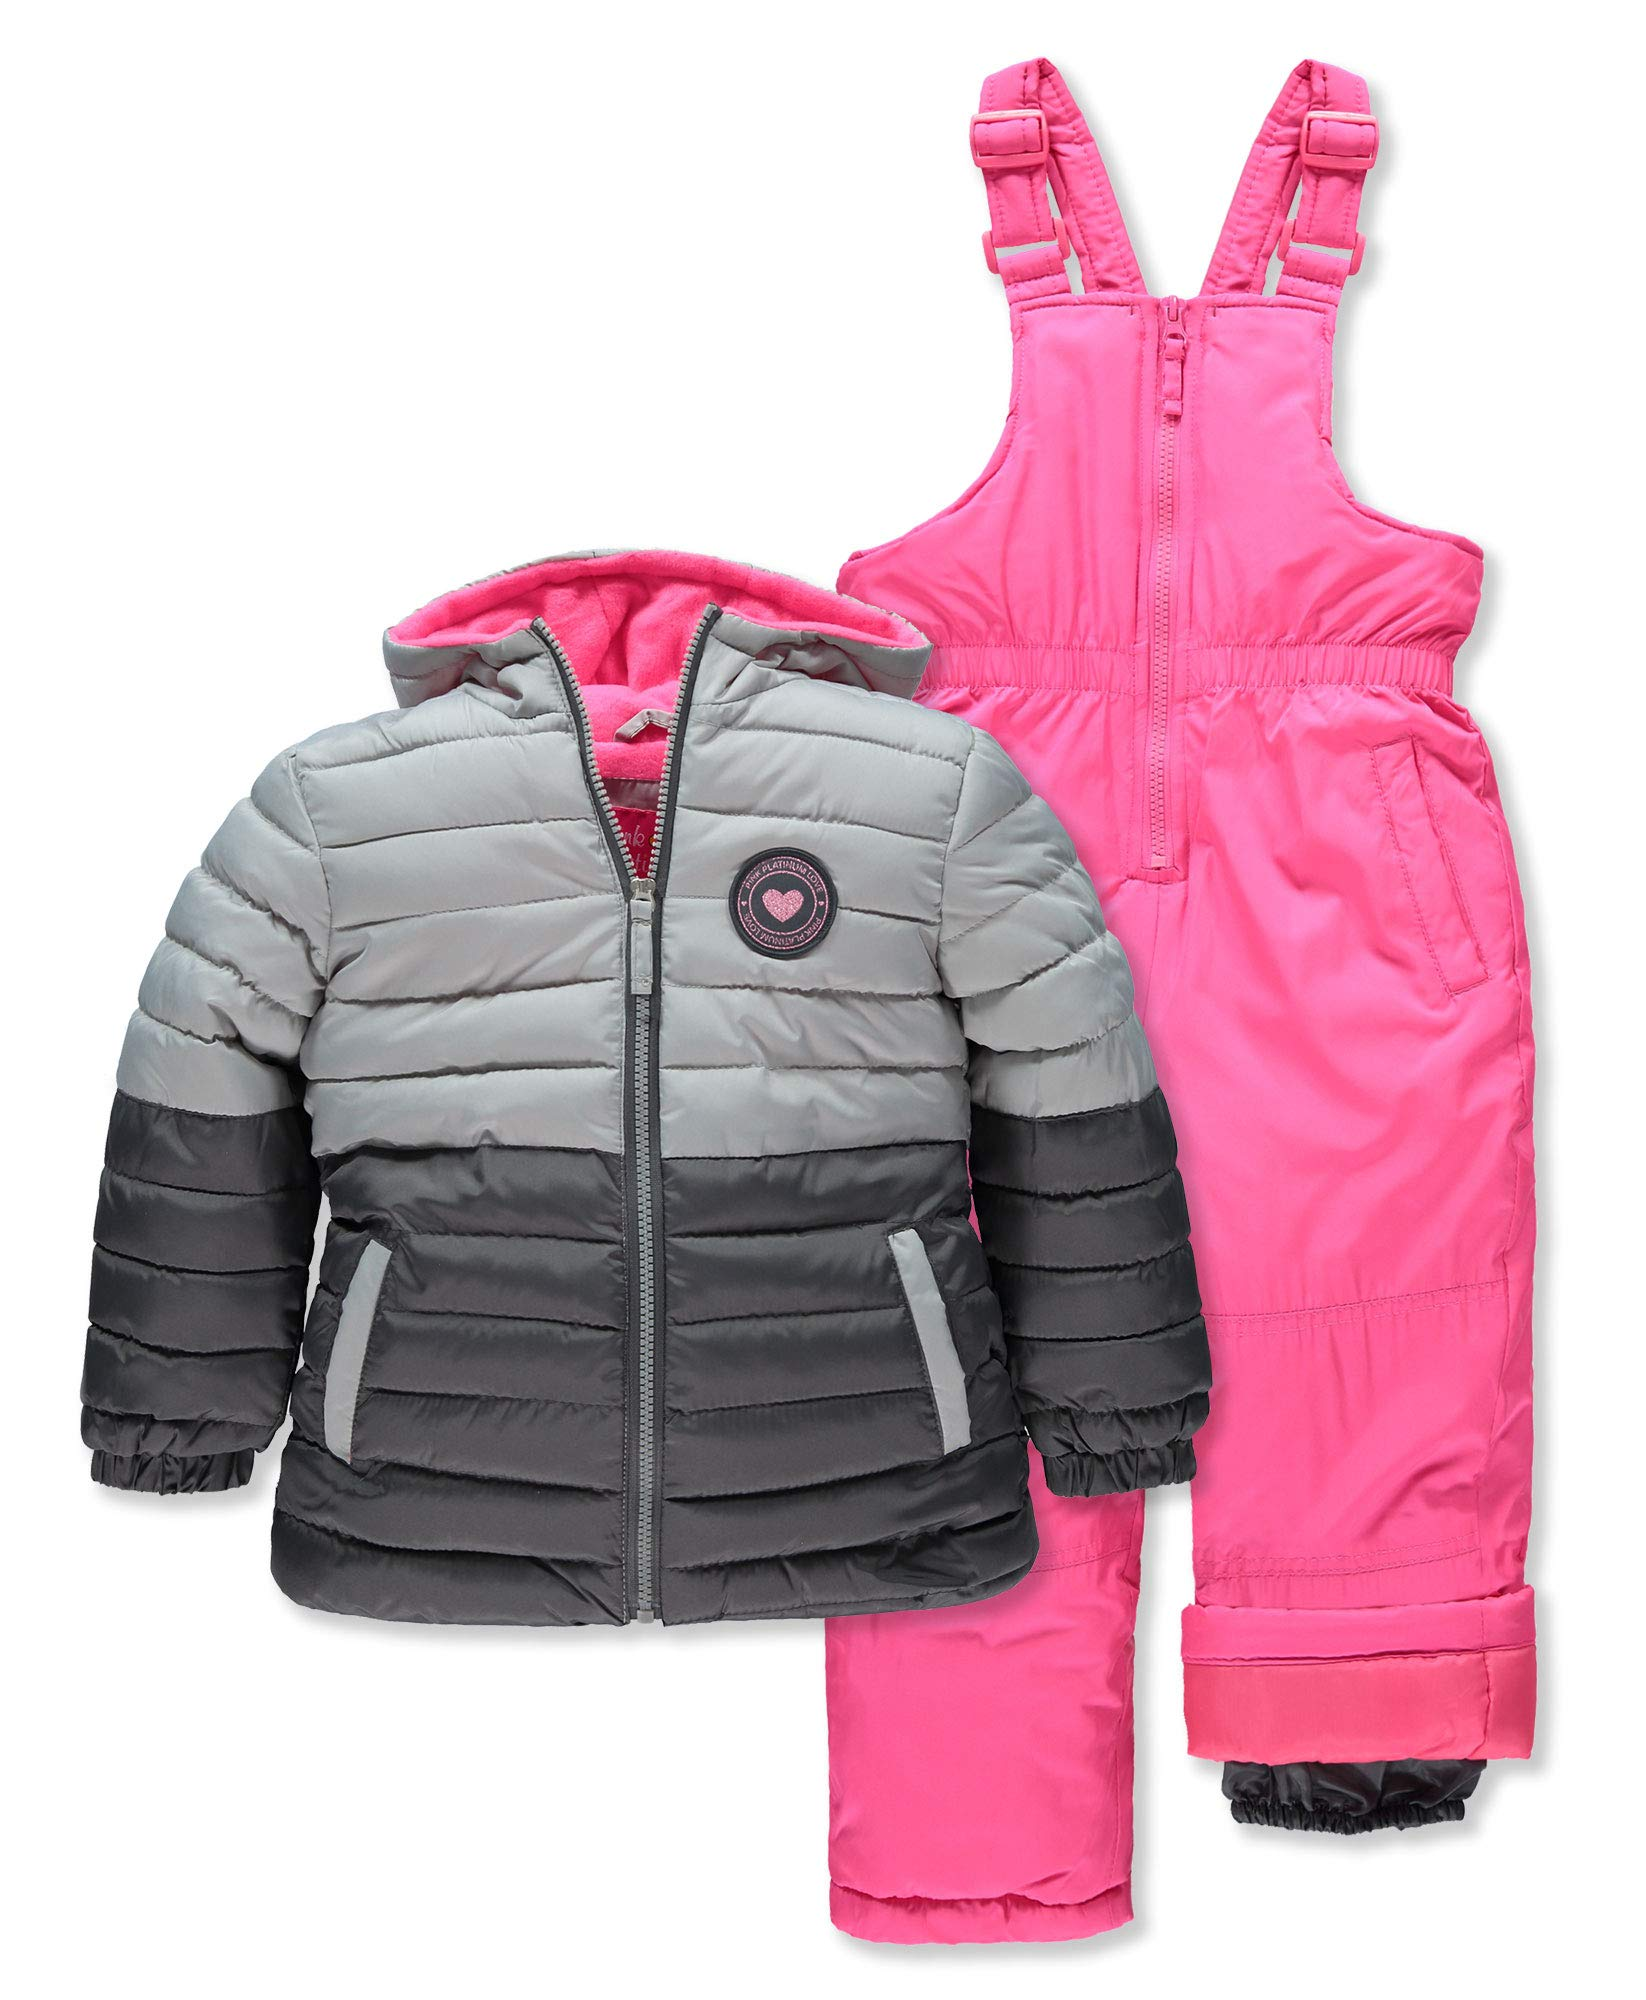 Pink Platinum Girls' Toddler Insulated Two-Piece Snowsuit, Charcoal Block, 4T by Pink Platinum